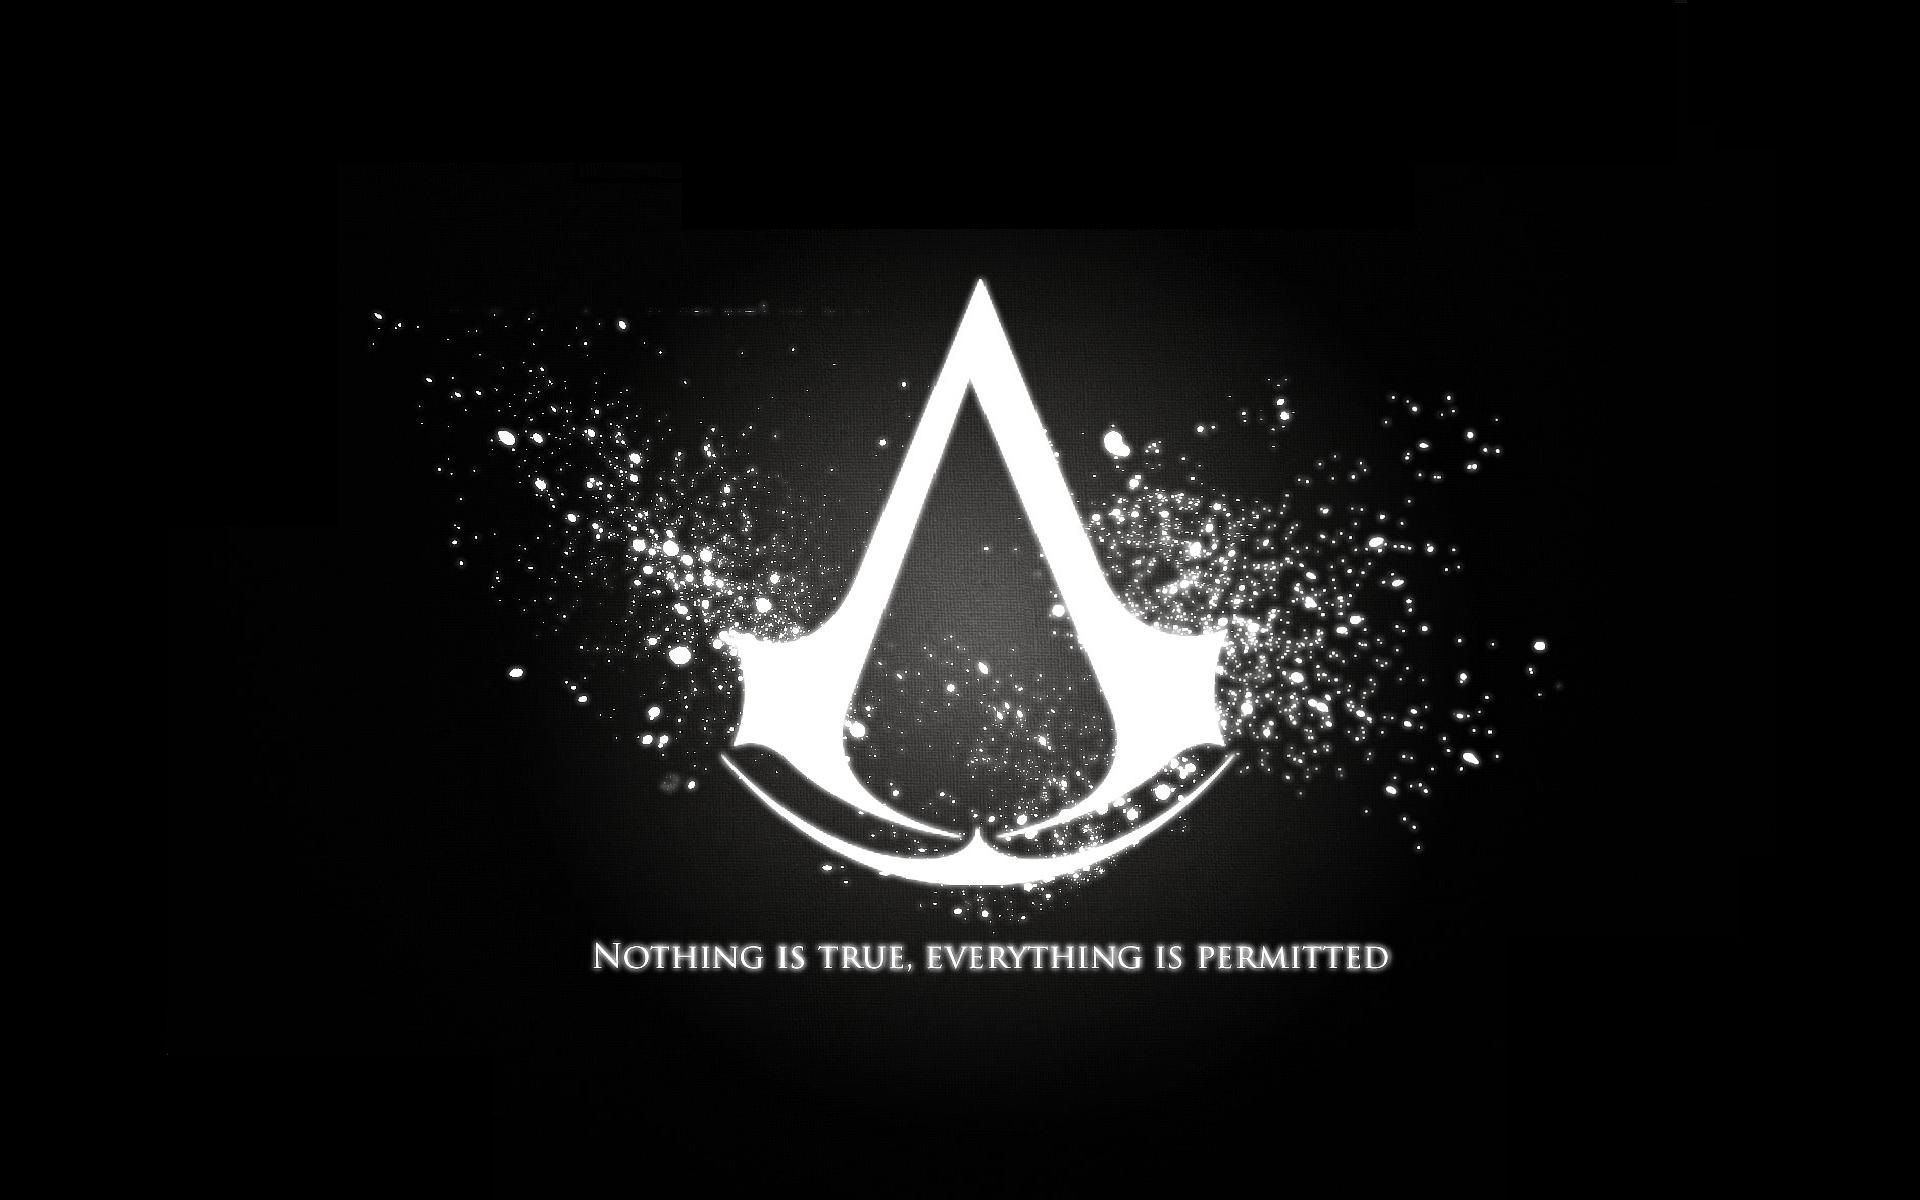 Assassins Creed Symbol Wallpapers - Wallpaper Cave